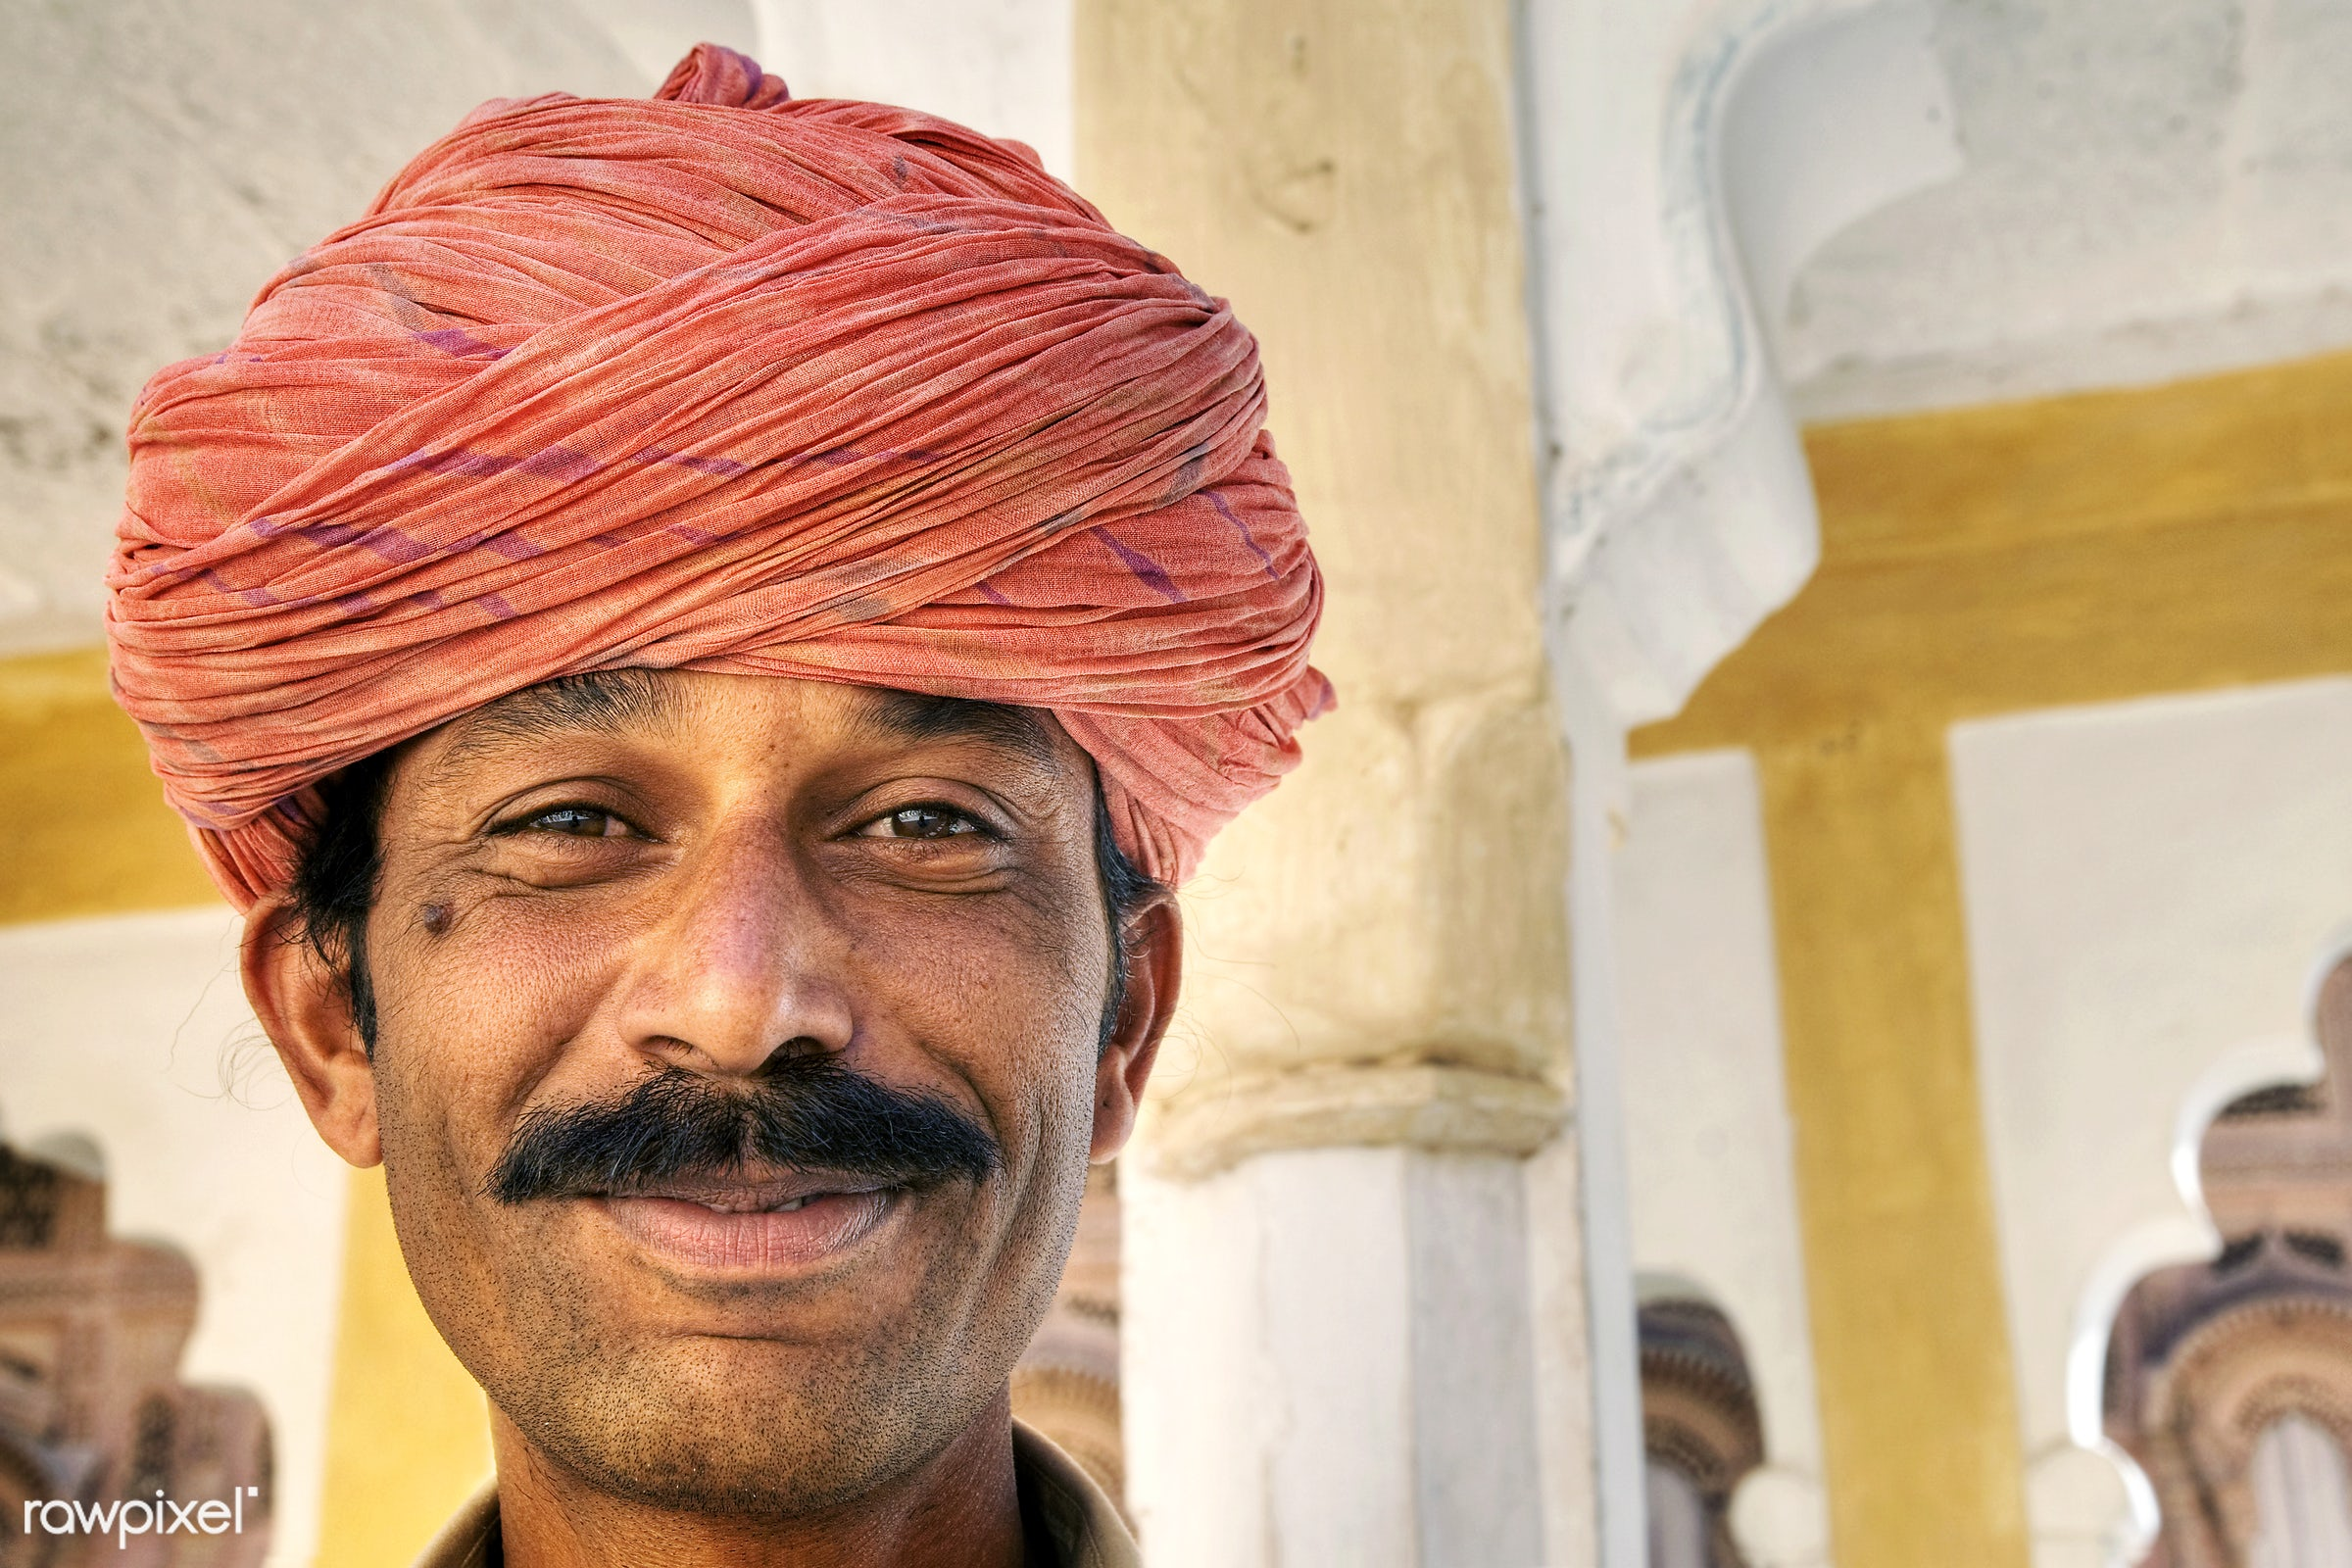 Indian man smiling to the camera. - lifestyles, adult, architecture, asia, asian ethnicity, built structure, cheerful,...